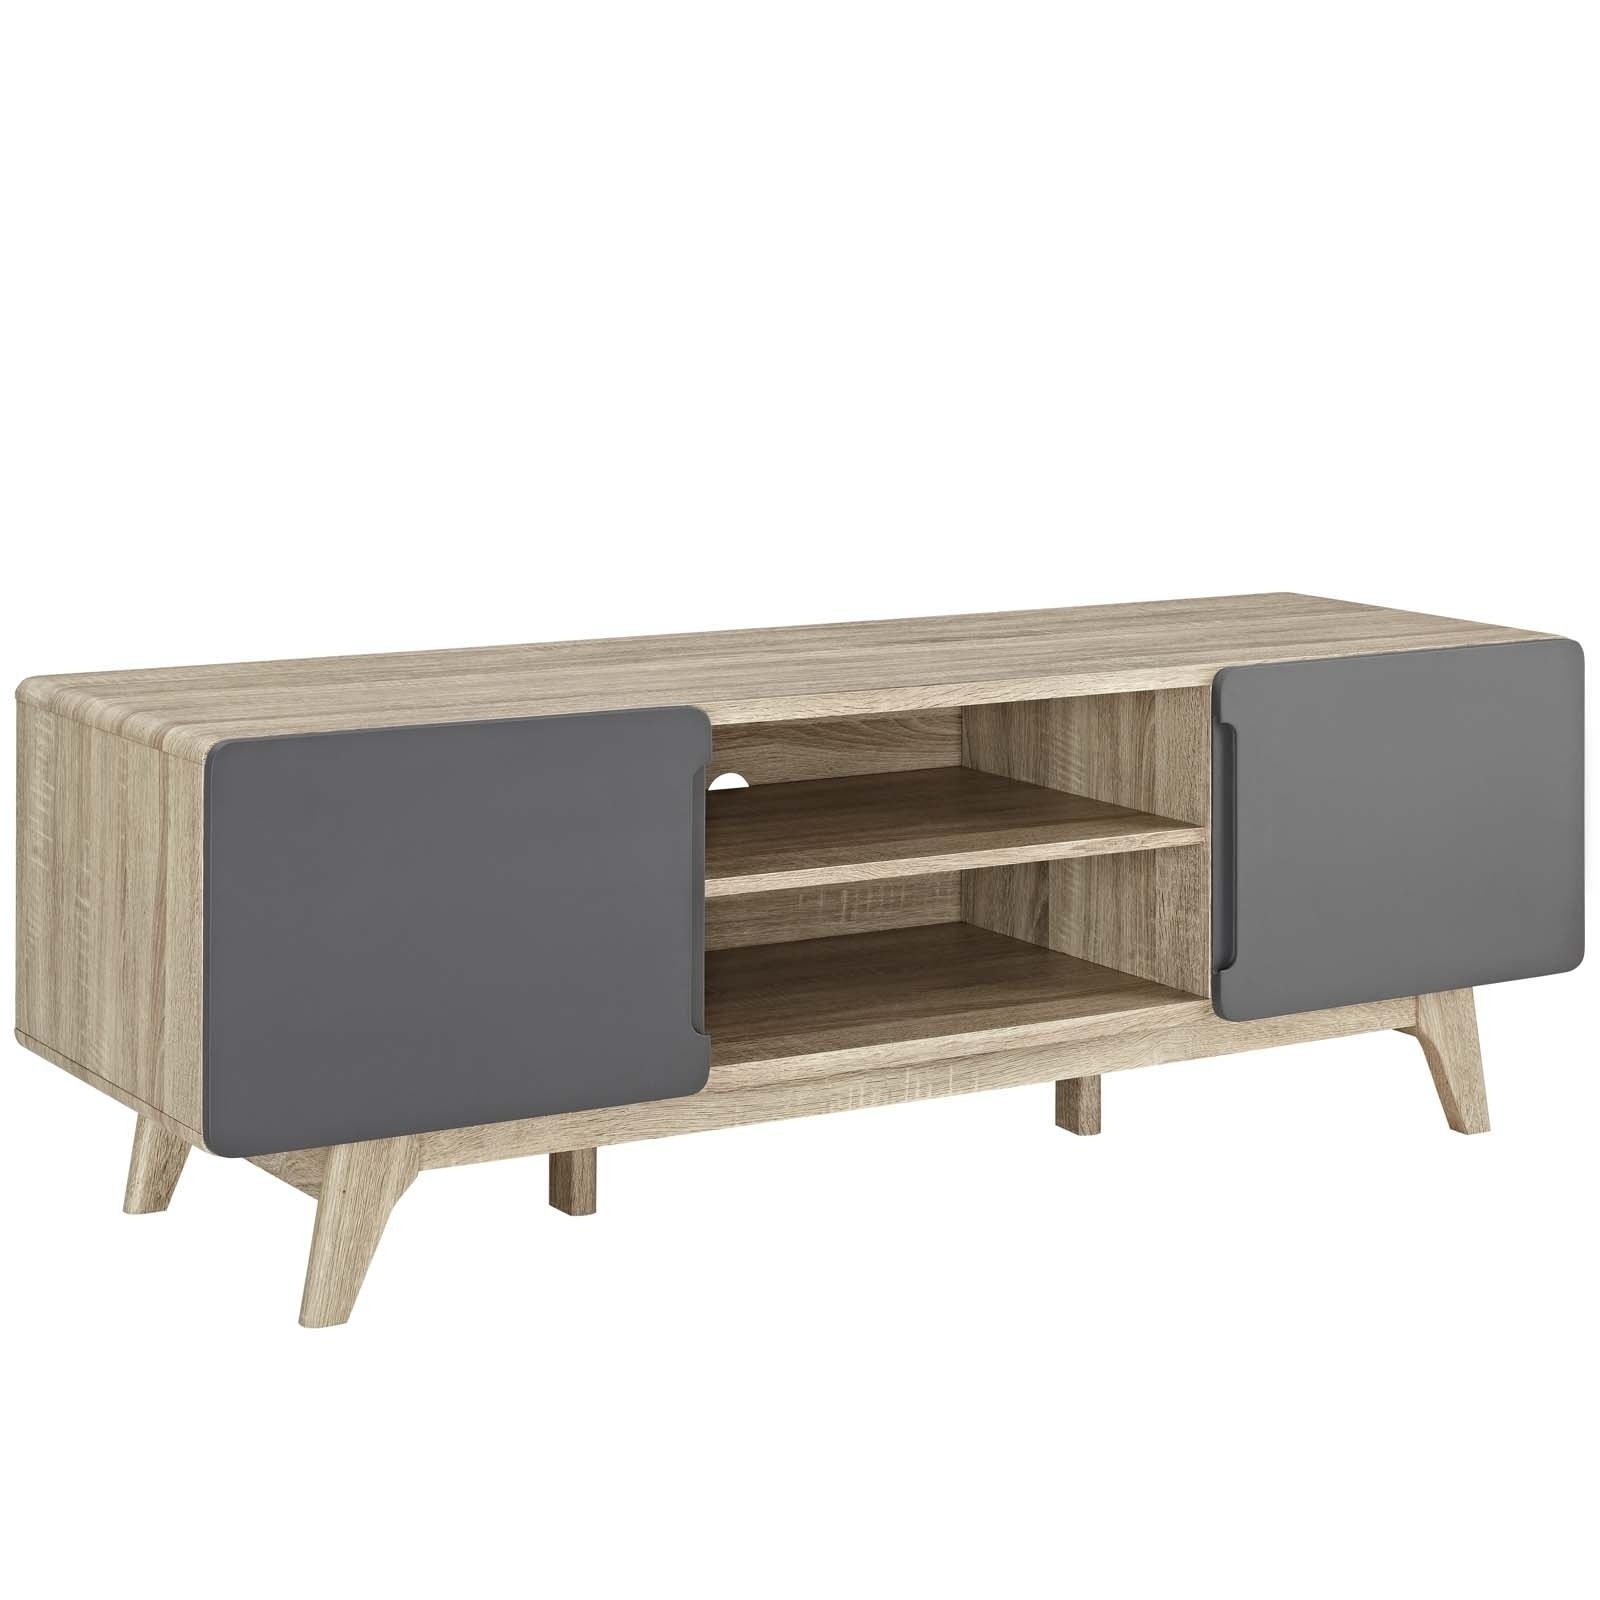 """Shop Tread 59"""" Tv Stand - 59 Inches - Free Shipping Today in Rowan 45 Inch Tv Stands (Image 18 of 30)"""